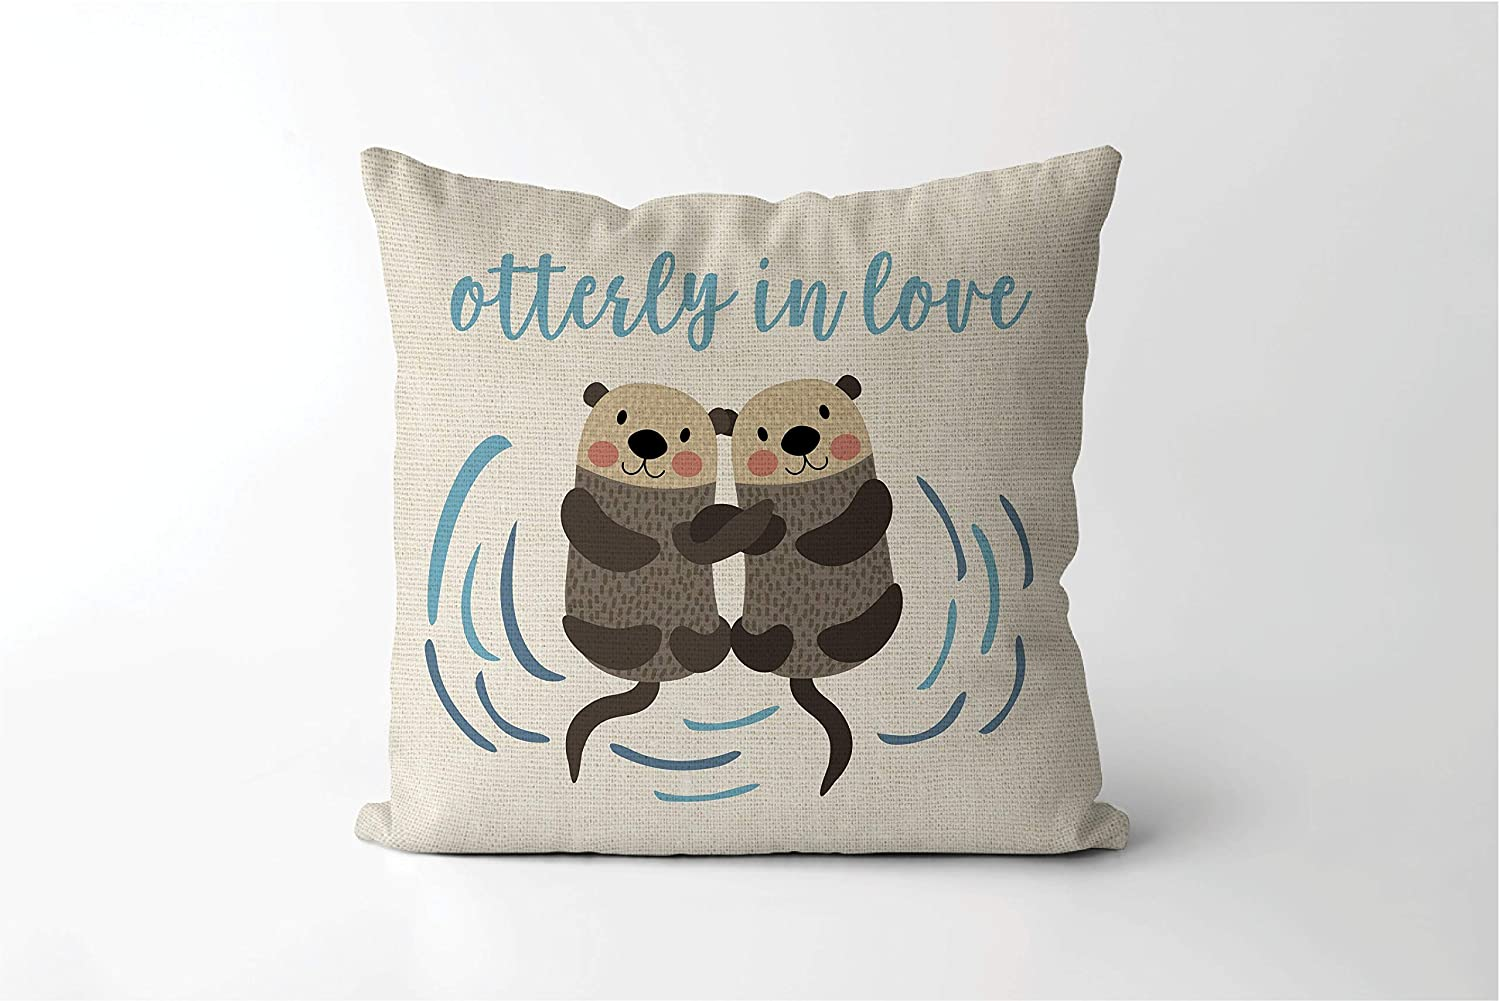 Otterly in Love Pillowcase Valentines Gift for Boyfriend Valentines Day Decor Otter Decor Otter Valentine Valentines Gift for Wife